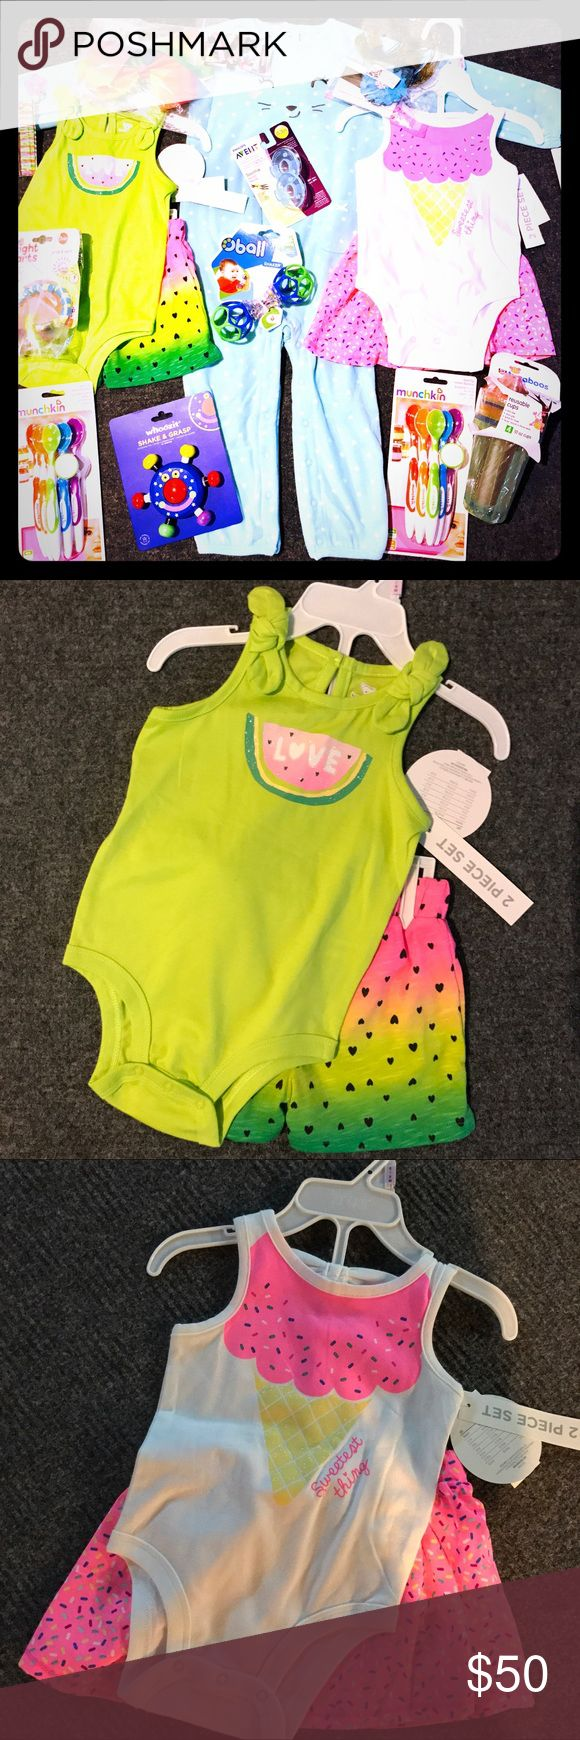 📍LAST CHANCE 📍 Huge Baby Girl Bundle! All included Carter's 24M one piece outfit, two 6-9M Koala Baby 2 piece Outfits, two packages of MUNCHKIN 6 pack soft tip spoons, OBALL Shaker, Boutique Brand Manhattan Toy Company WHOOZIT Wooden Toy, Bright Starts Grasp & Spin, 🌈 Colored 8 inch hairbow, Boutique Set of 10 Grosgrain Ribbon 🎀 Cover clips. Peacock Feather Headband, PHILLIPS Advent Soothie Pacifier Set Plus a bonus gift! Carter's Other